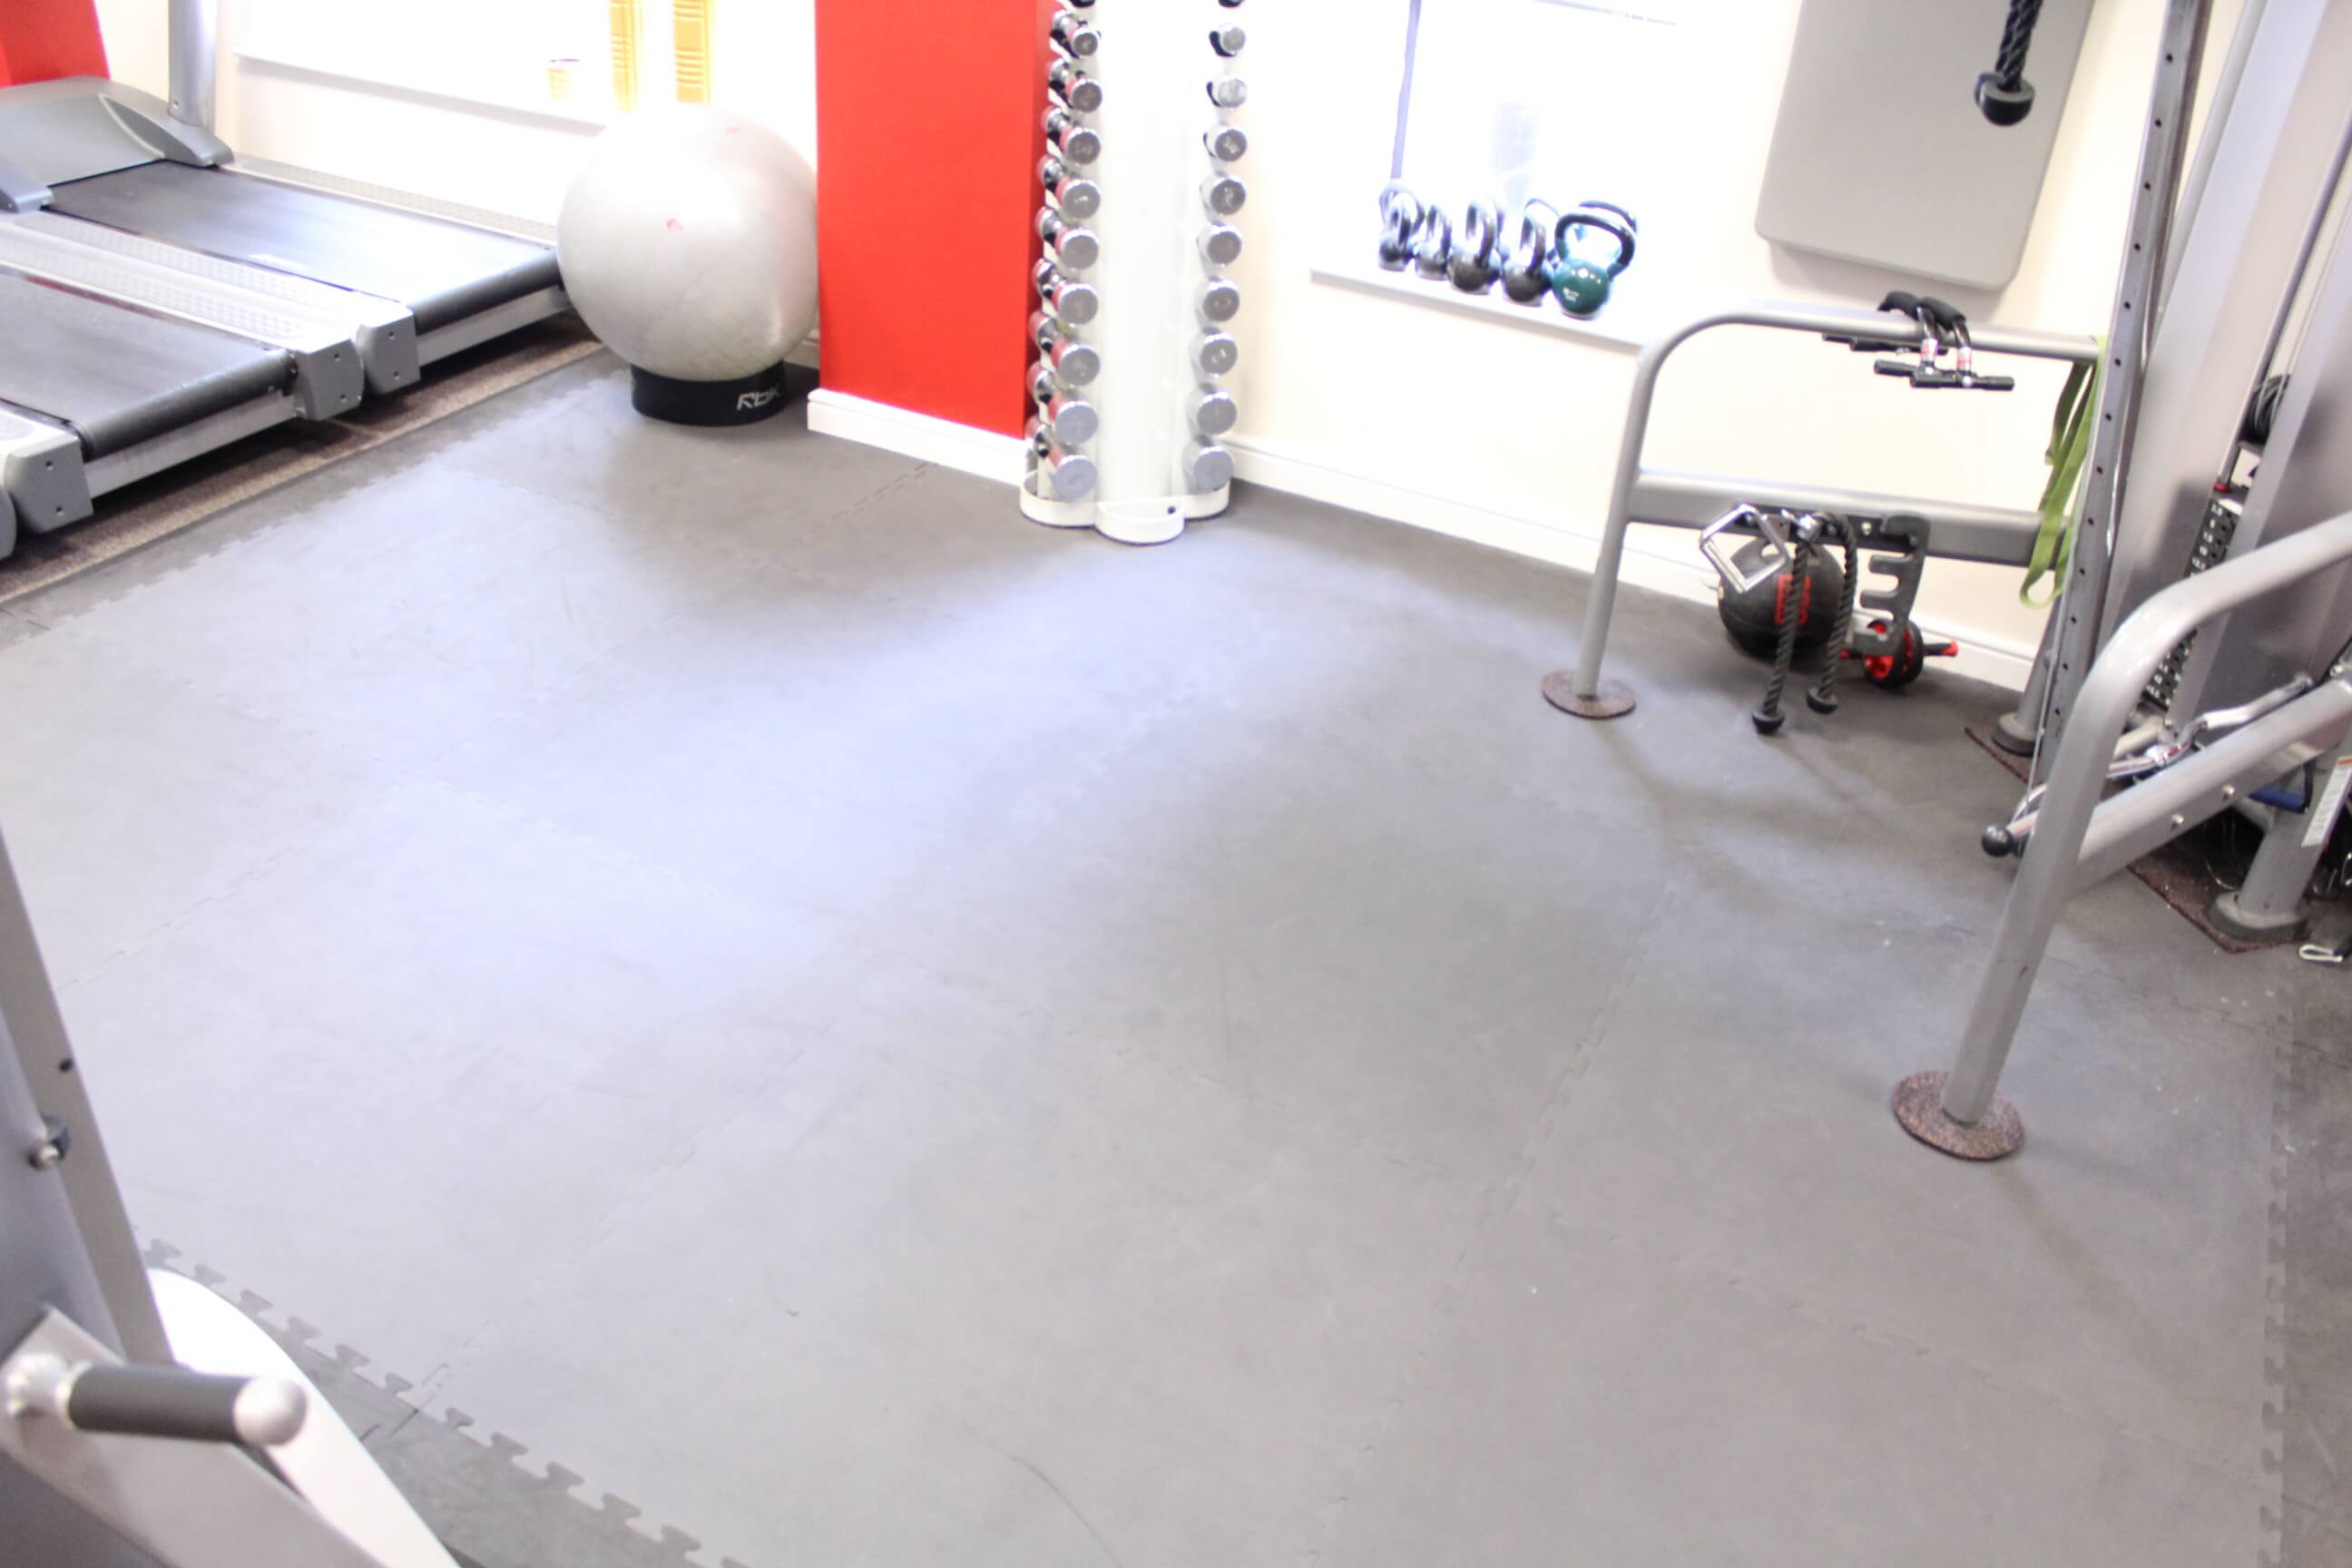 Picture of core functional training area